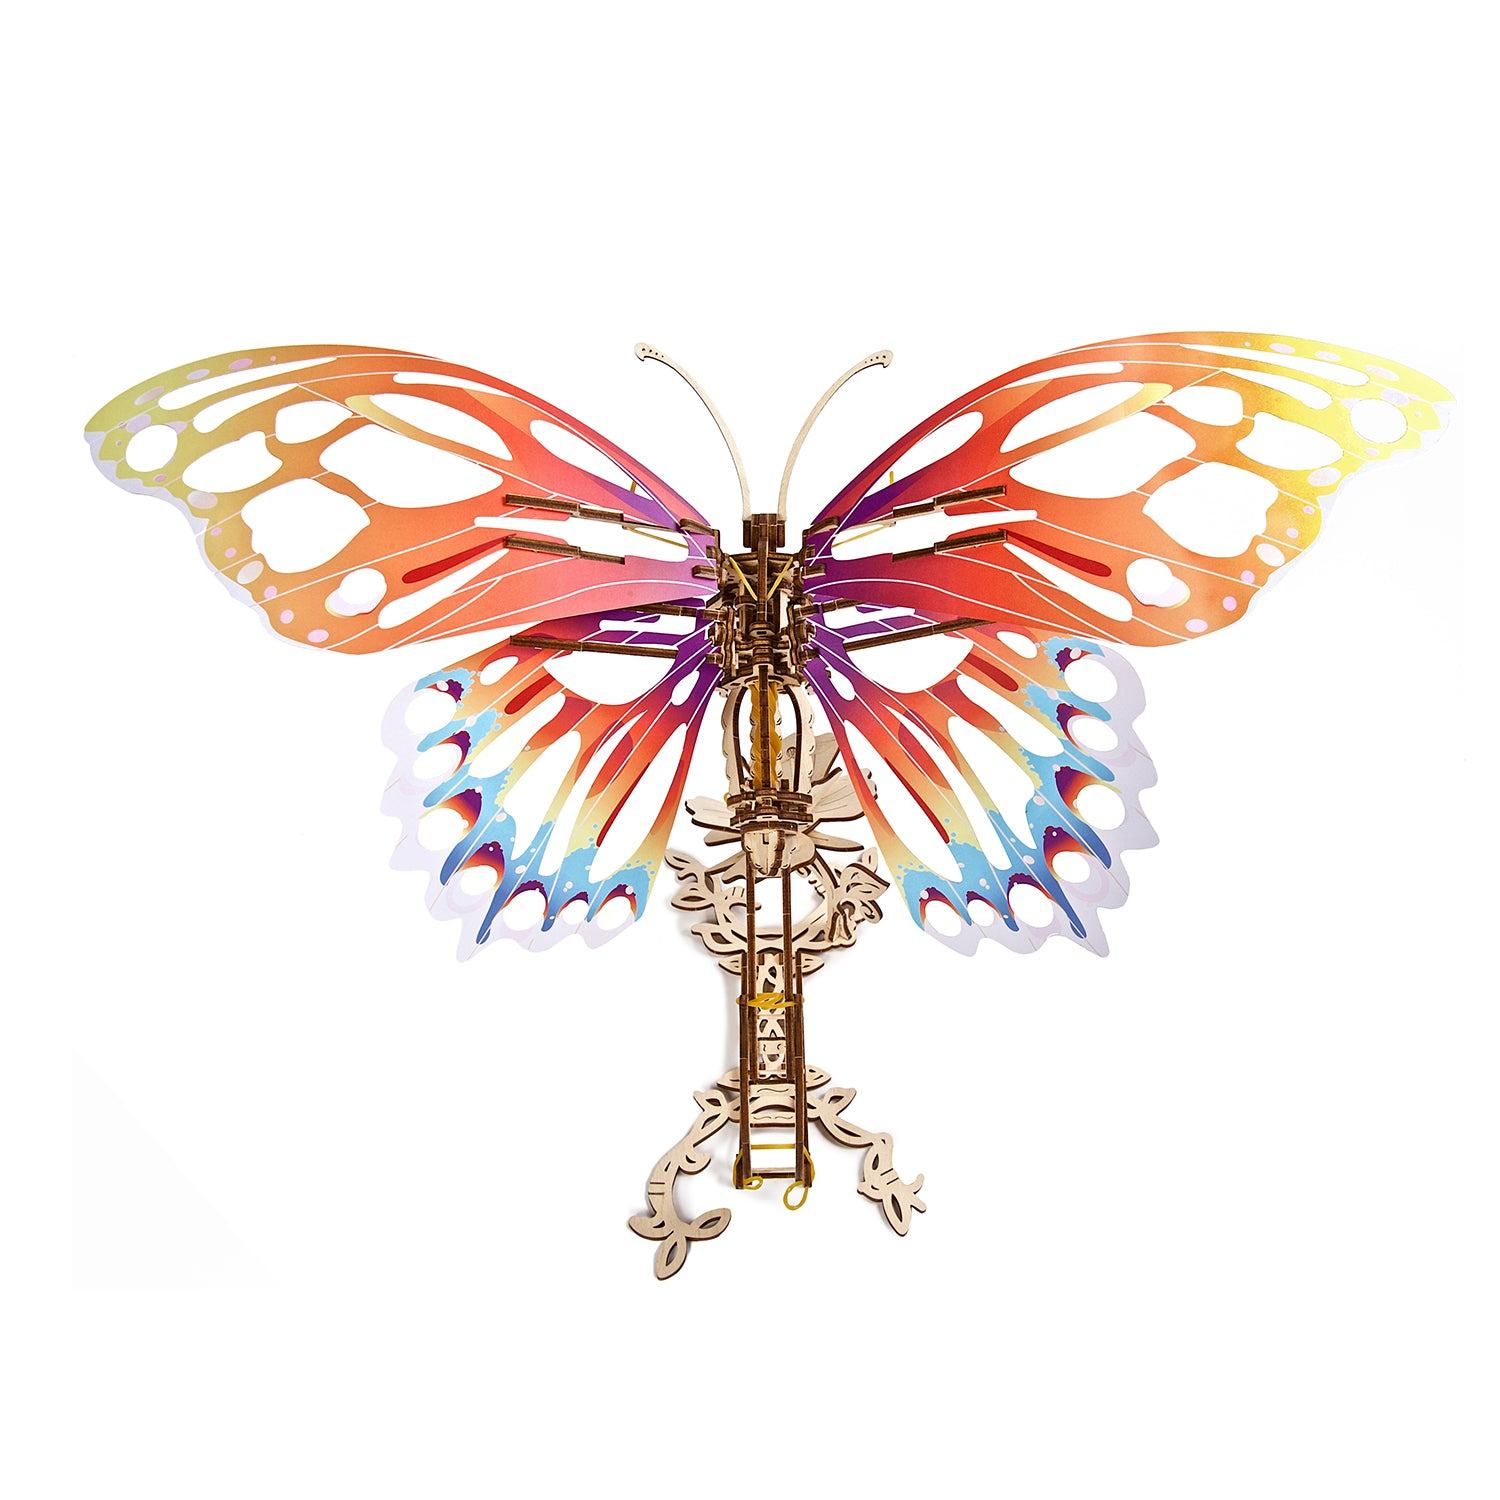 """Butterfly"" mechanical model kit"